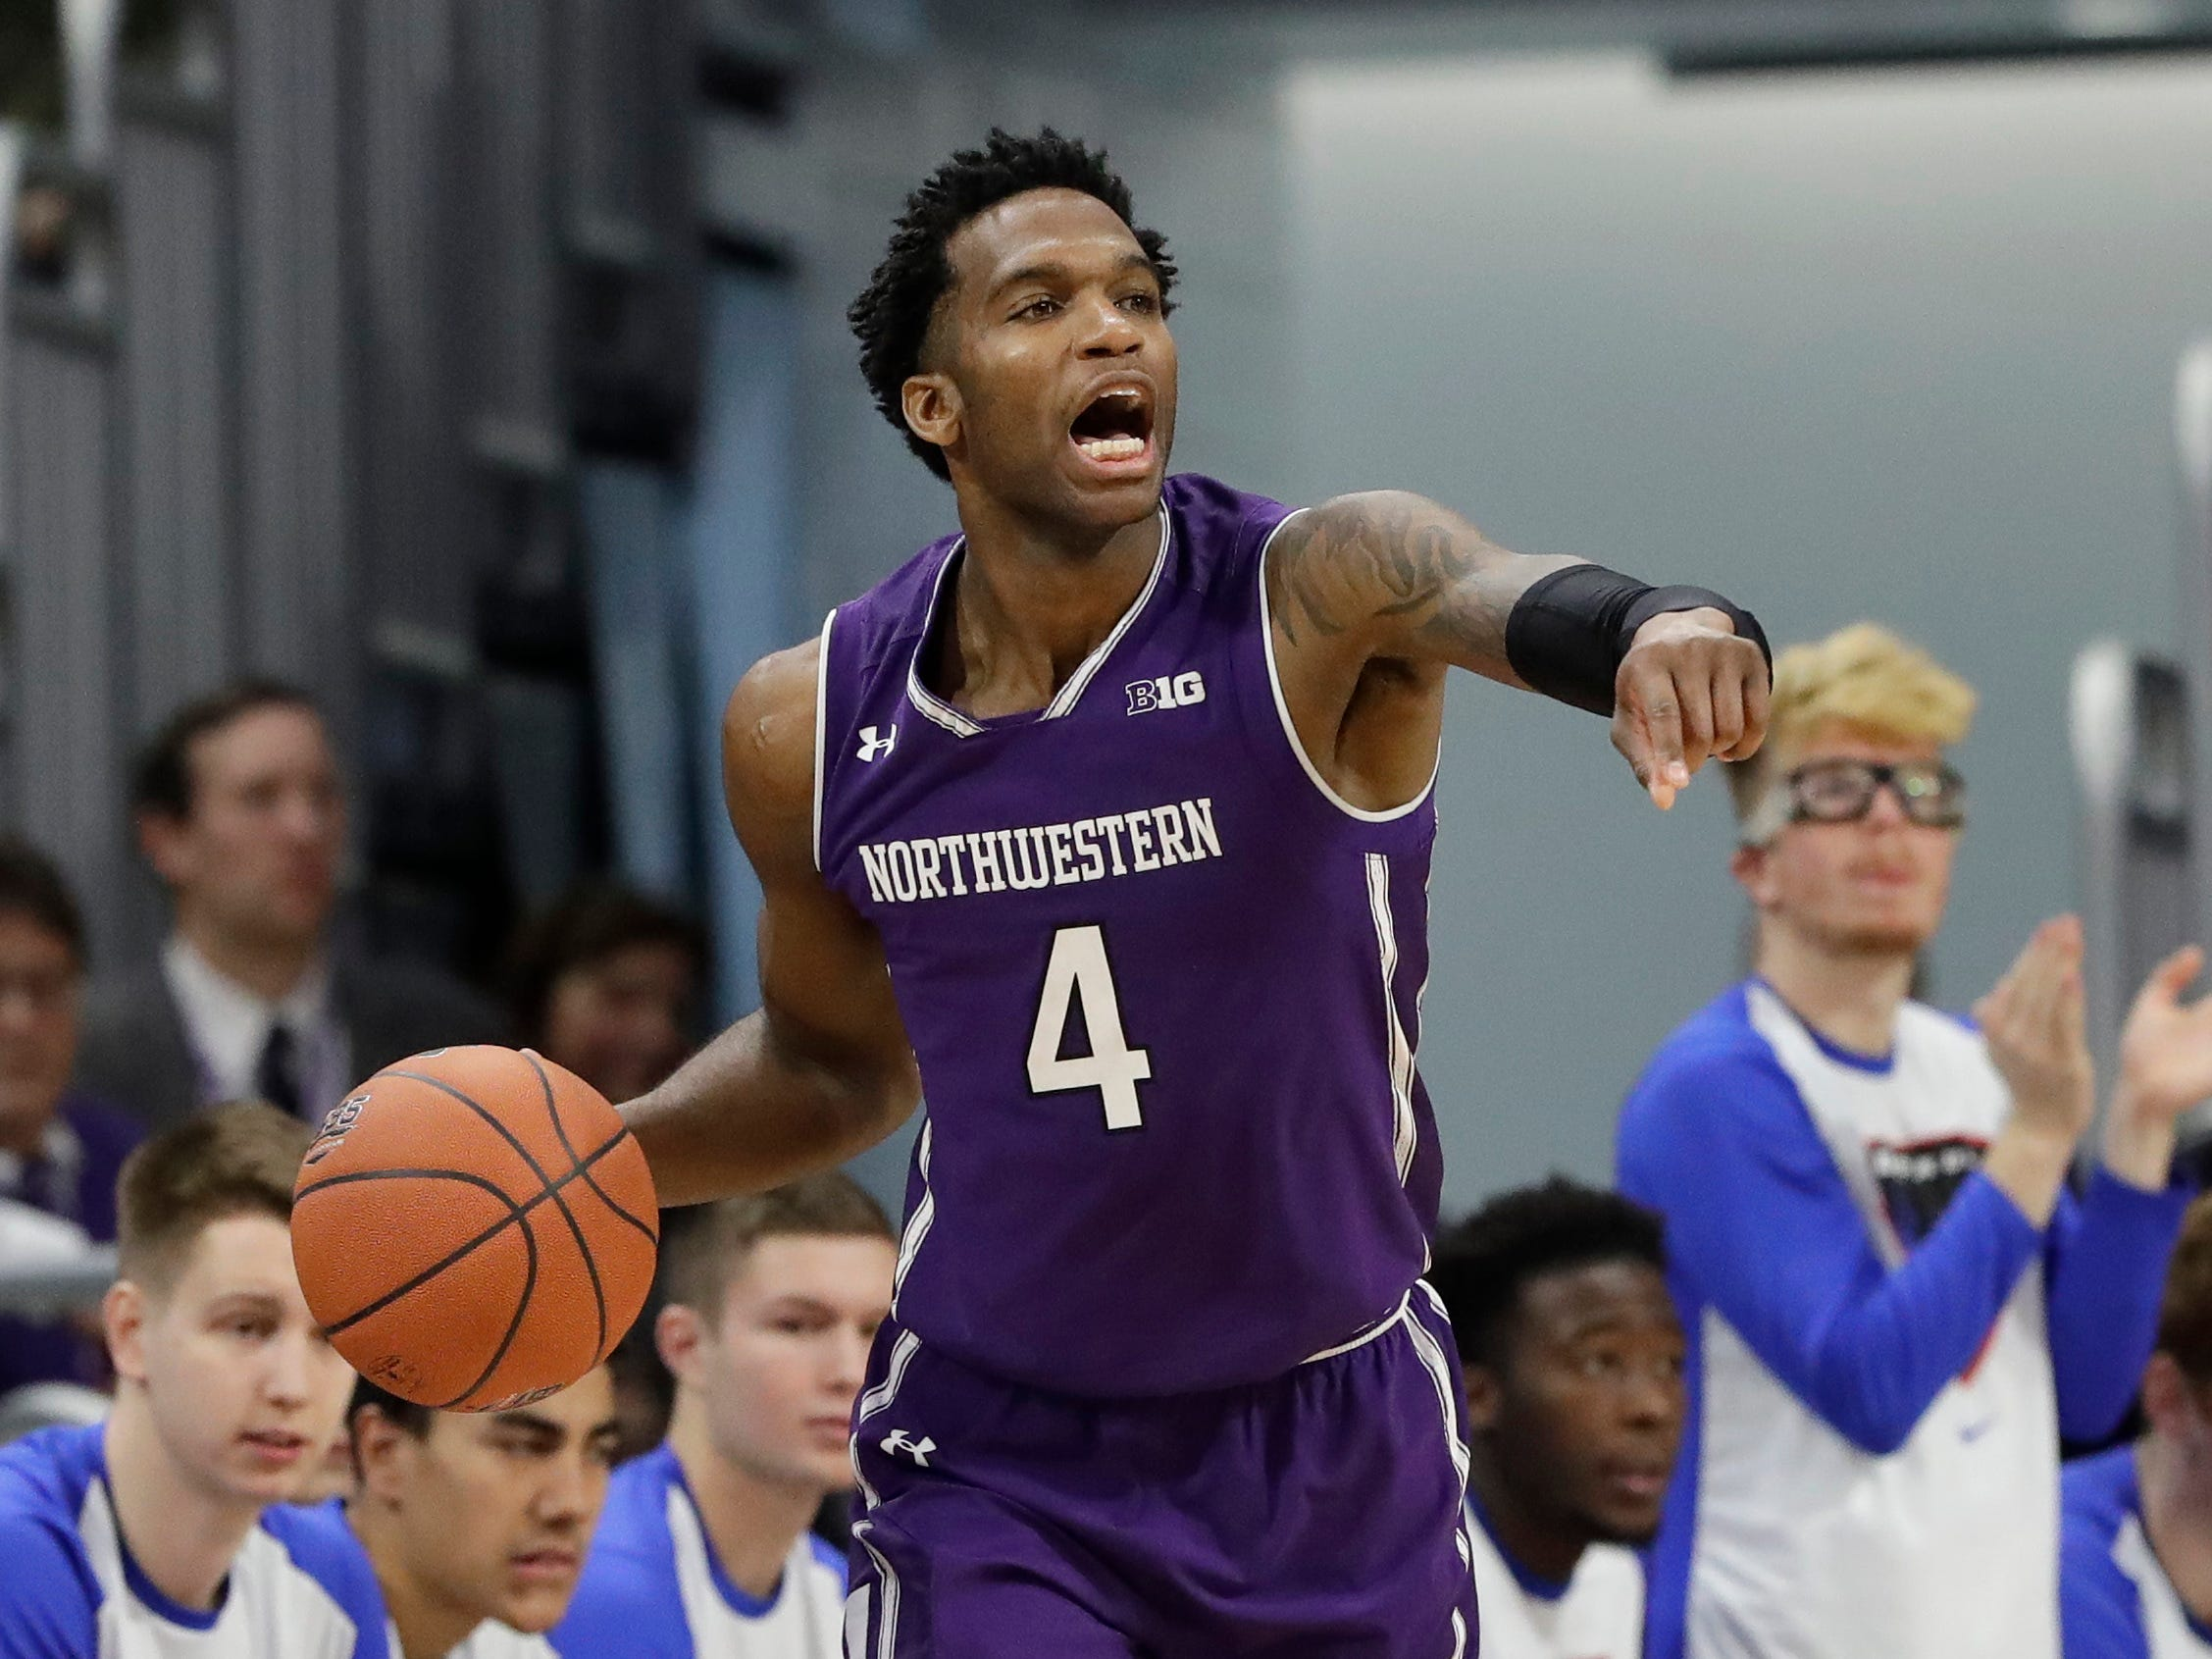 No. 11: Northwestern Wildcats (7-3, 0-2). Senior forward Vic Law is posting 18.5 points, 6.7 rebounds and 1.2 blocks per game, and shooting 41.8 percent from 3-point range (23-for-55).